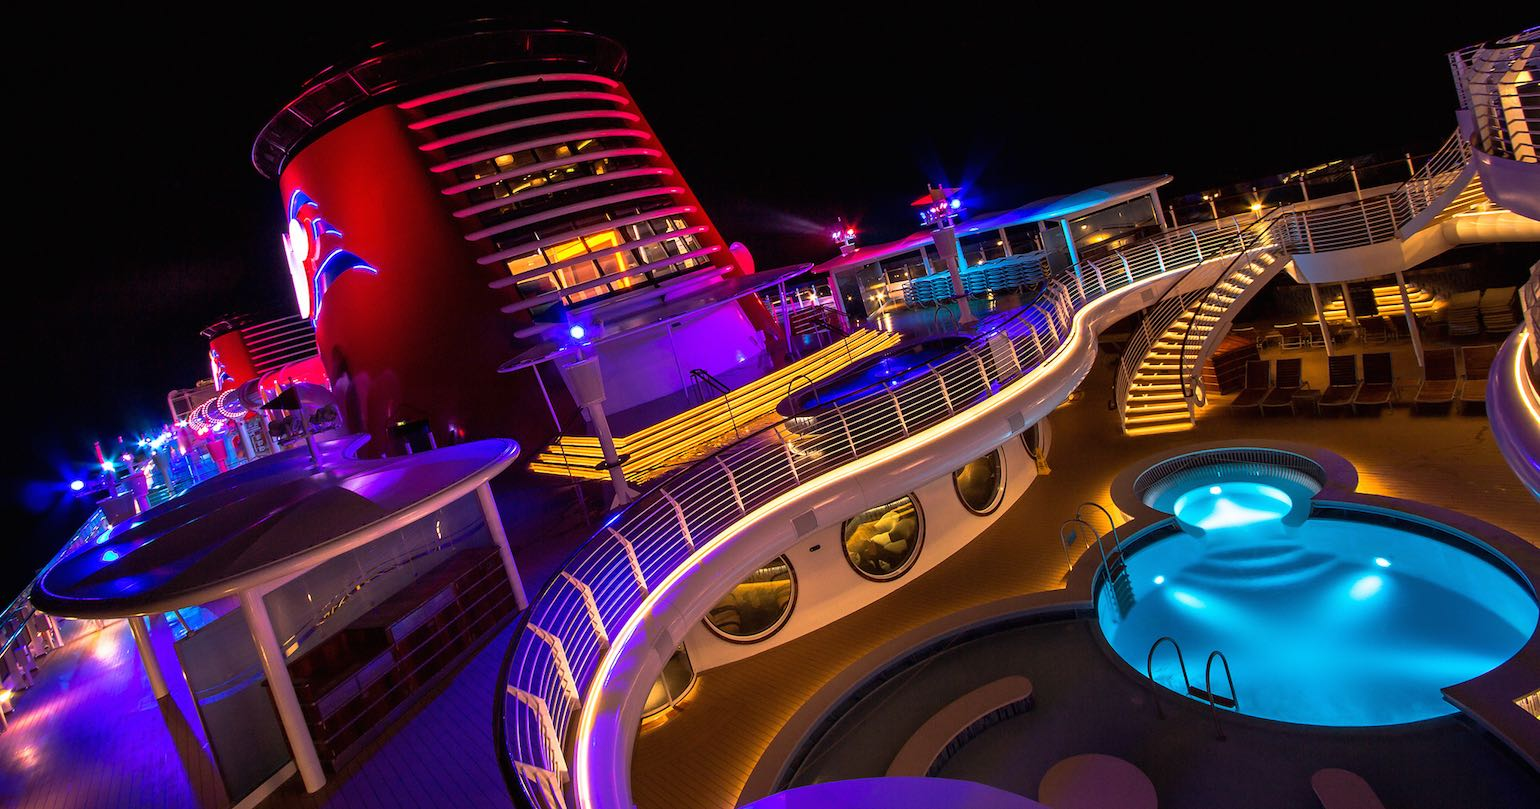 The best cruise ships for couples